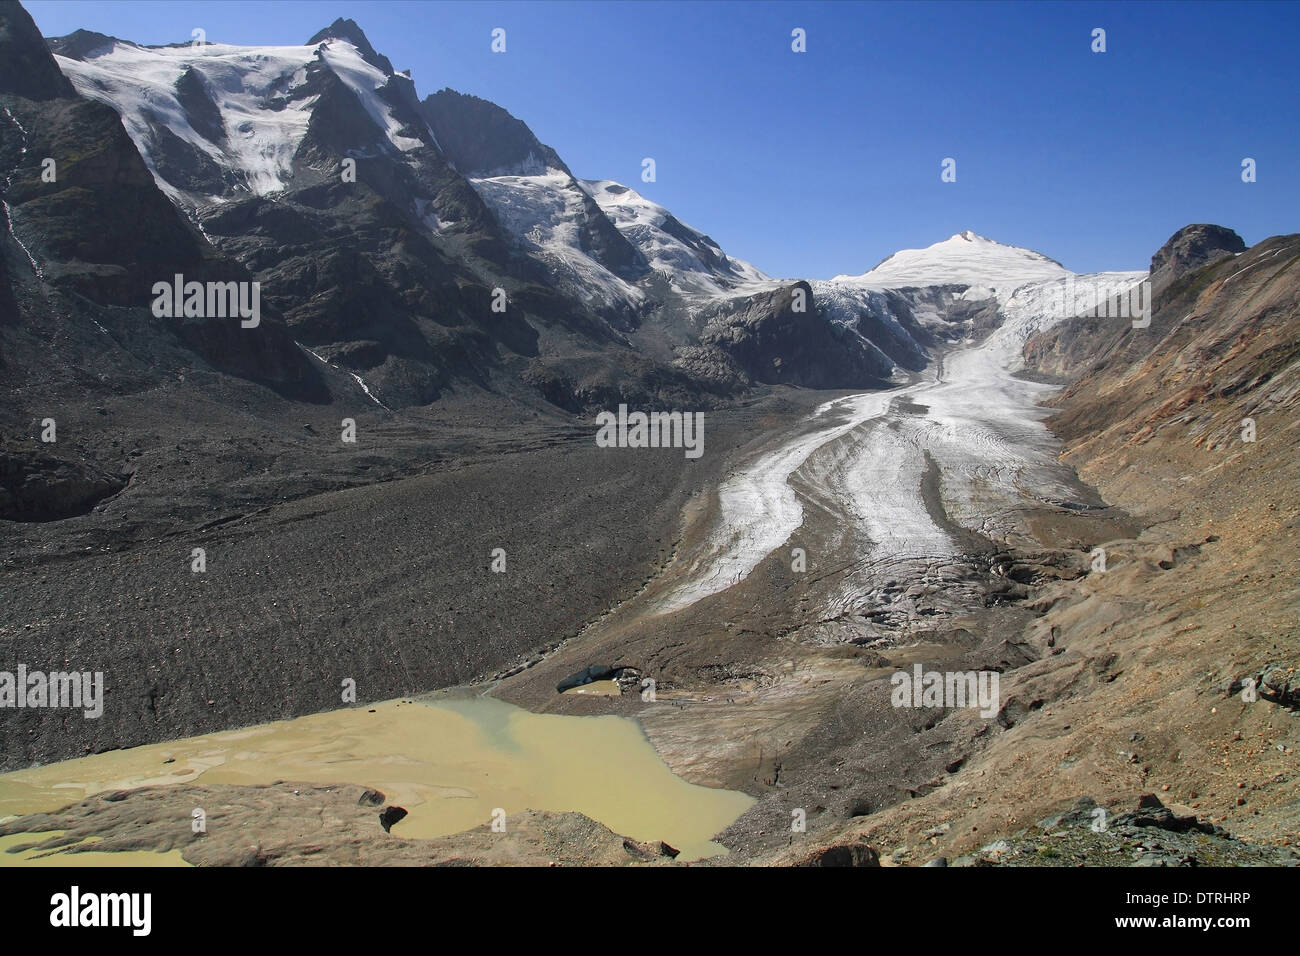 Pasterze glacier in the National Park of Hohe Tauern, Austria. Stock Photo